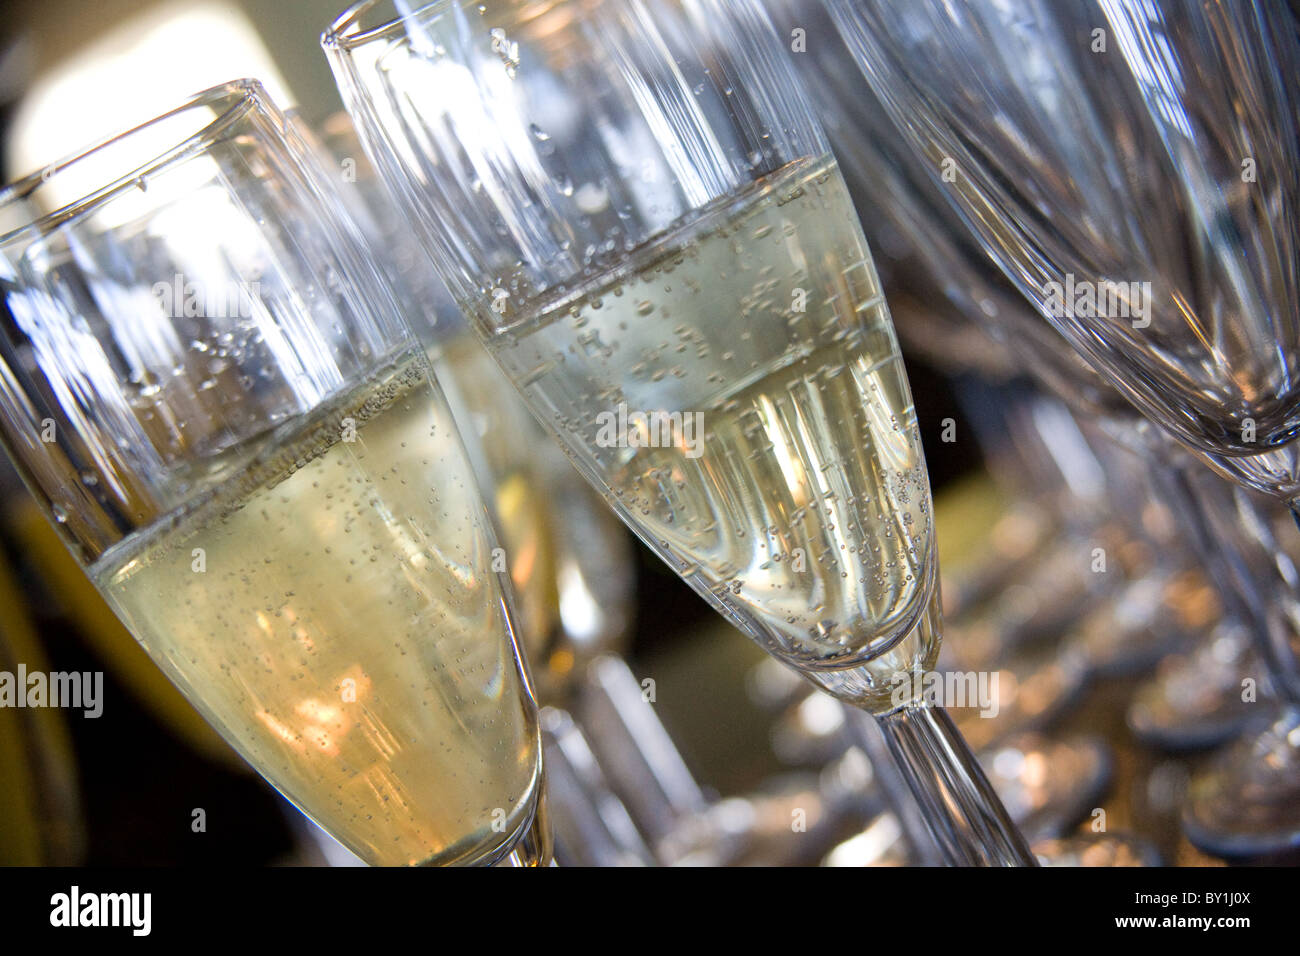 champagne in flute glasses - Stock Image